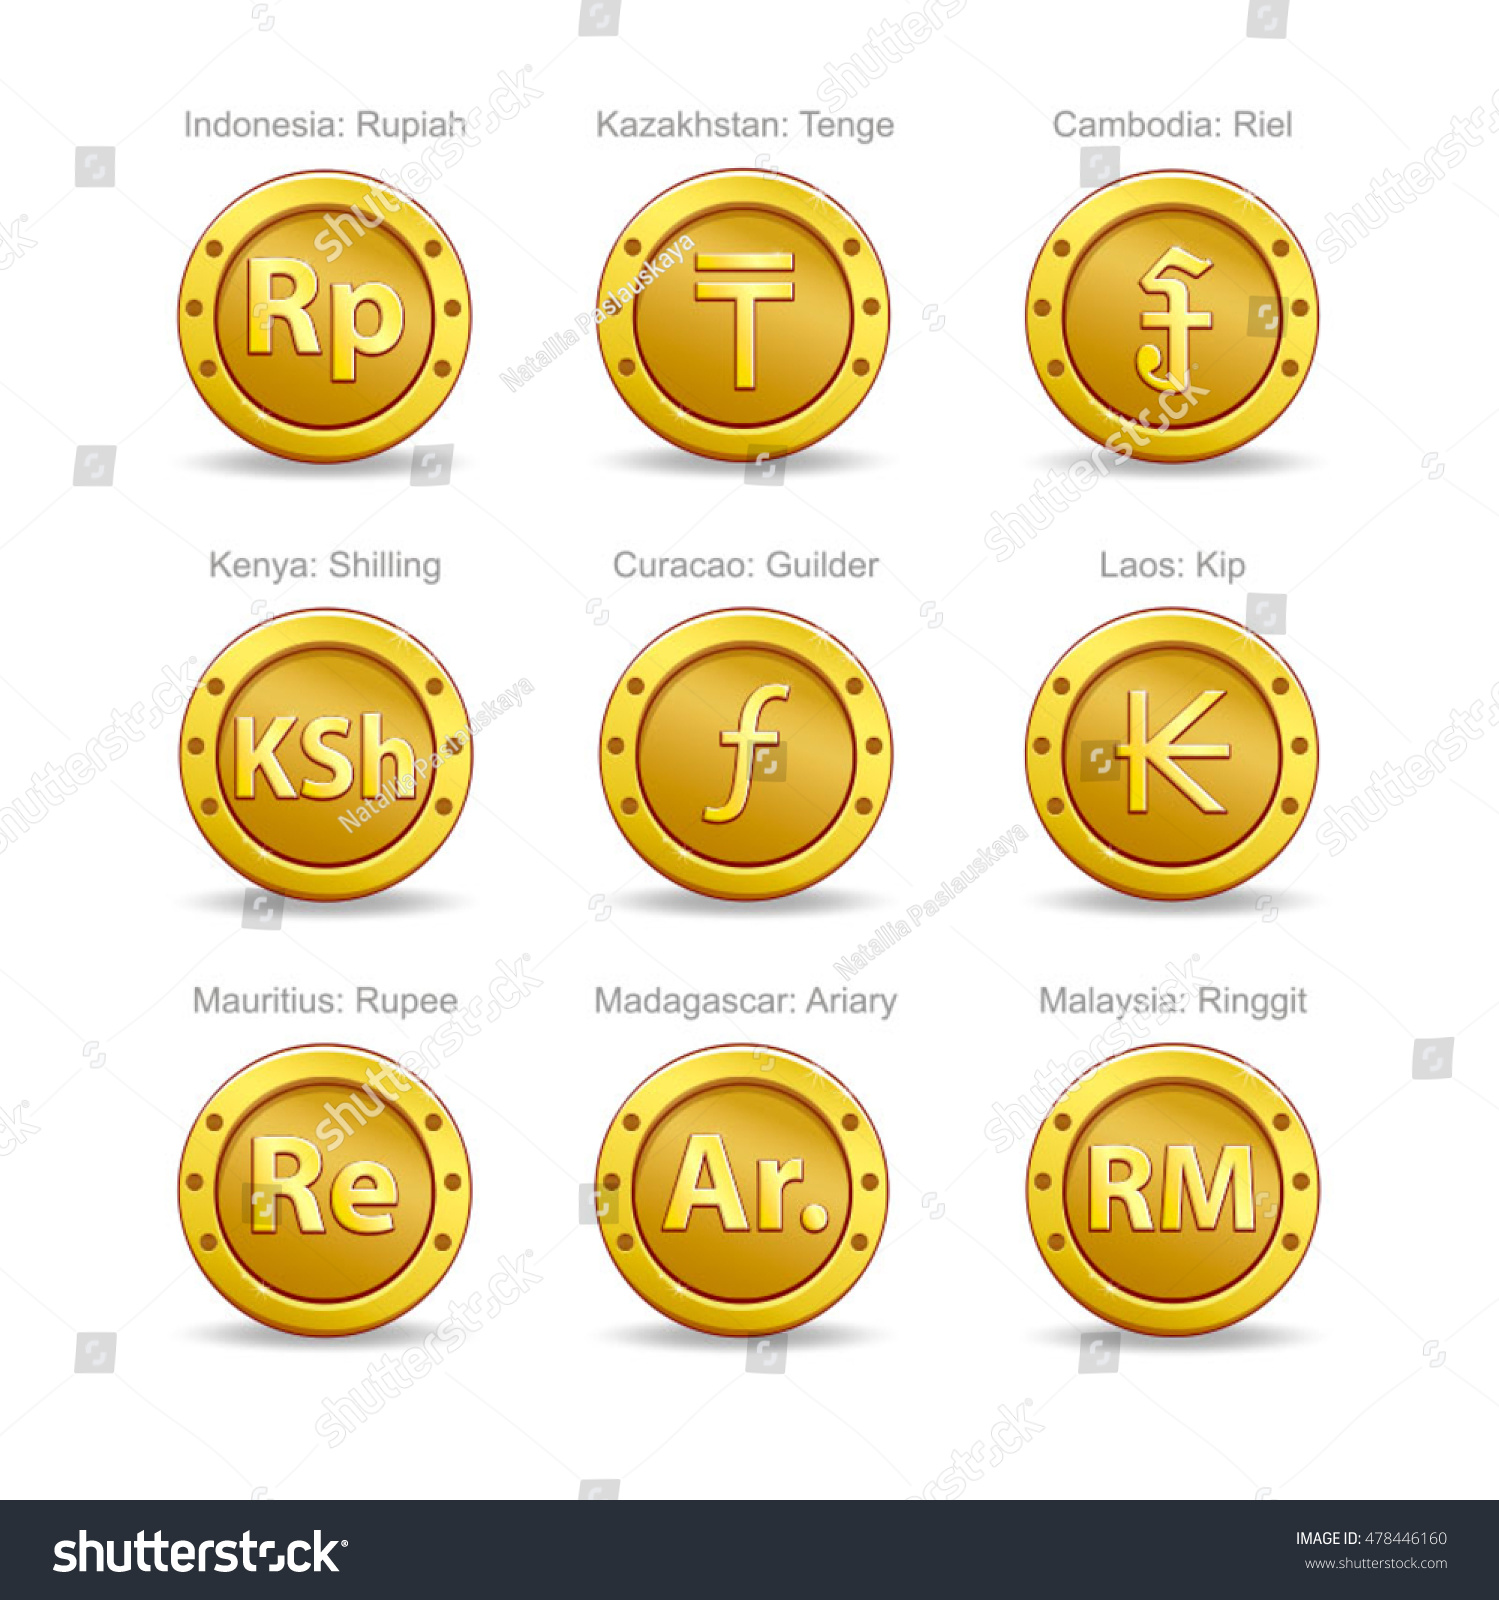 Set coins symbol currency stock vector 478446160 shutterstock set coins symbol currency buycottarizona Image collections